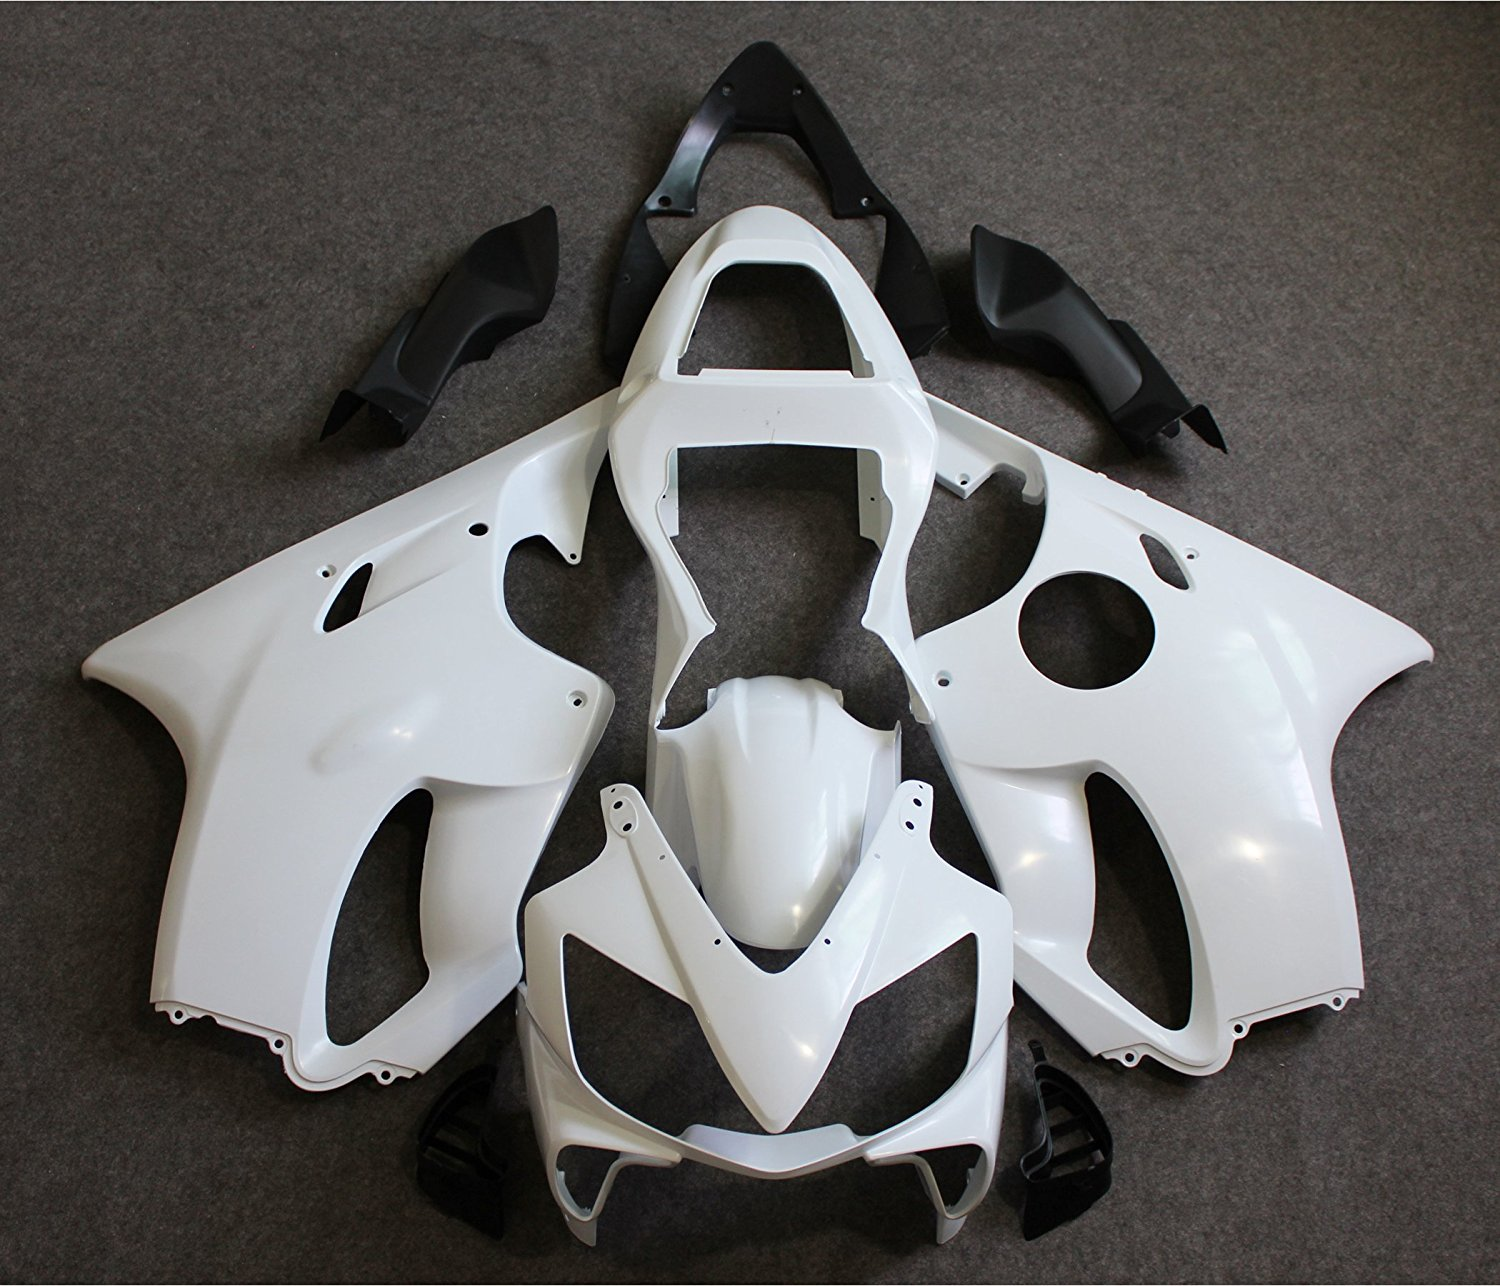 Unpainted Fairing Kit For Honda CBR 600 RR F4i 2001 2002 2003 CBR600RR CBR600 RR f4i 01-03 02 Motorcycle Injection Mold Fairings tax policy and the economy v18